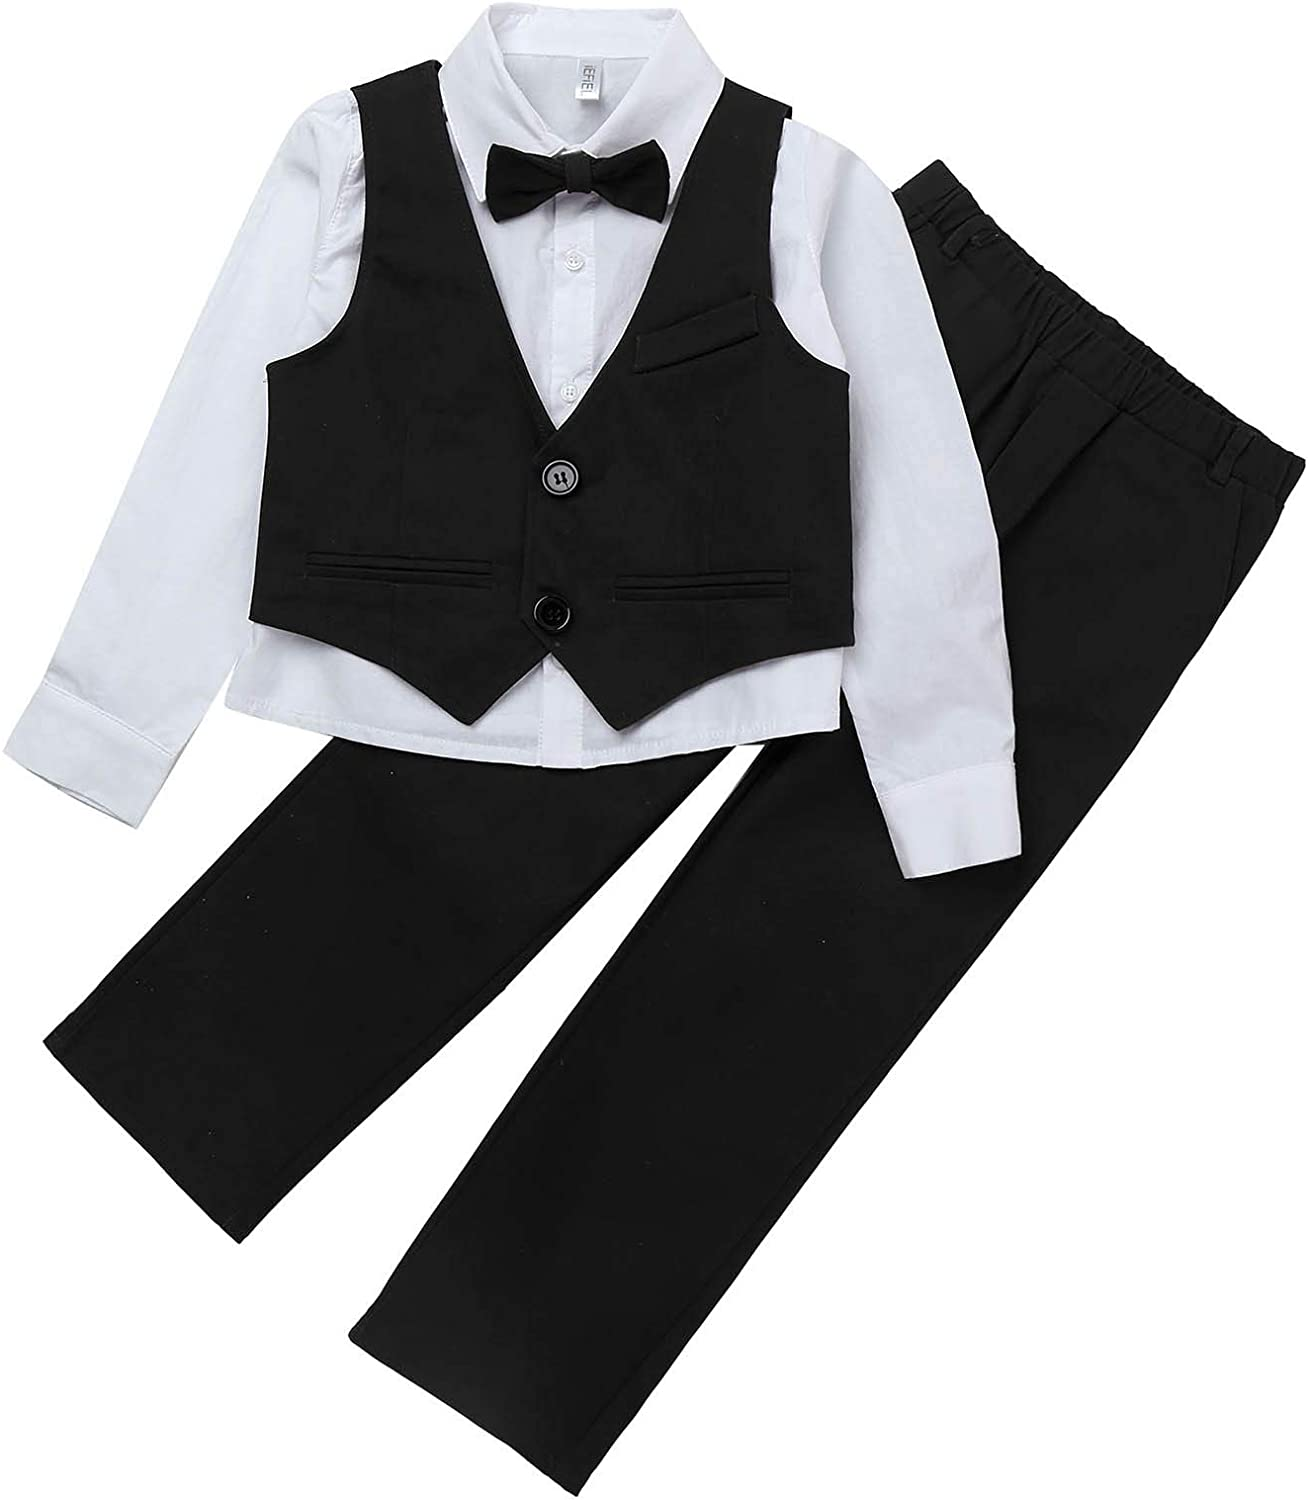 YOOJIA Kids Boys specialty 2021 autumn and winter new shop Suit for Weddings Party Bo Birthday Long Sleeve